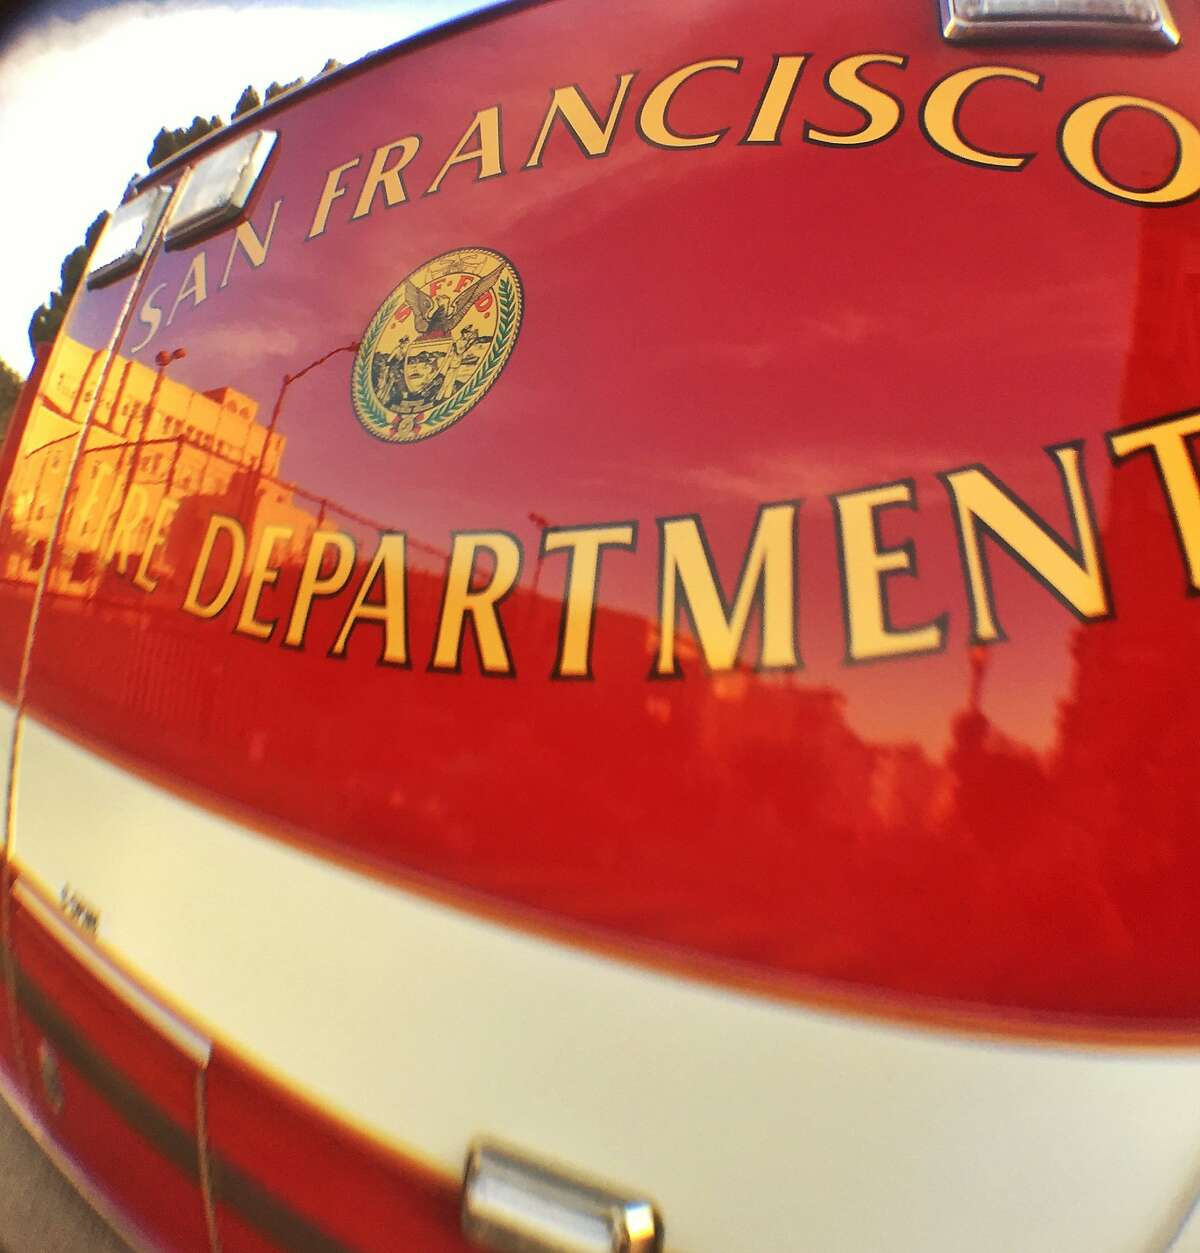 A longtime firefighter for the San Francisco Fire Department who says he faced years of harassment and discrimination for being Black and gay filed a lawsuit against the city last week seeking damages.